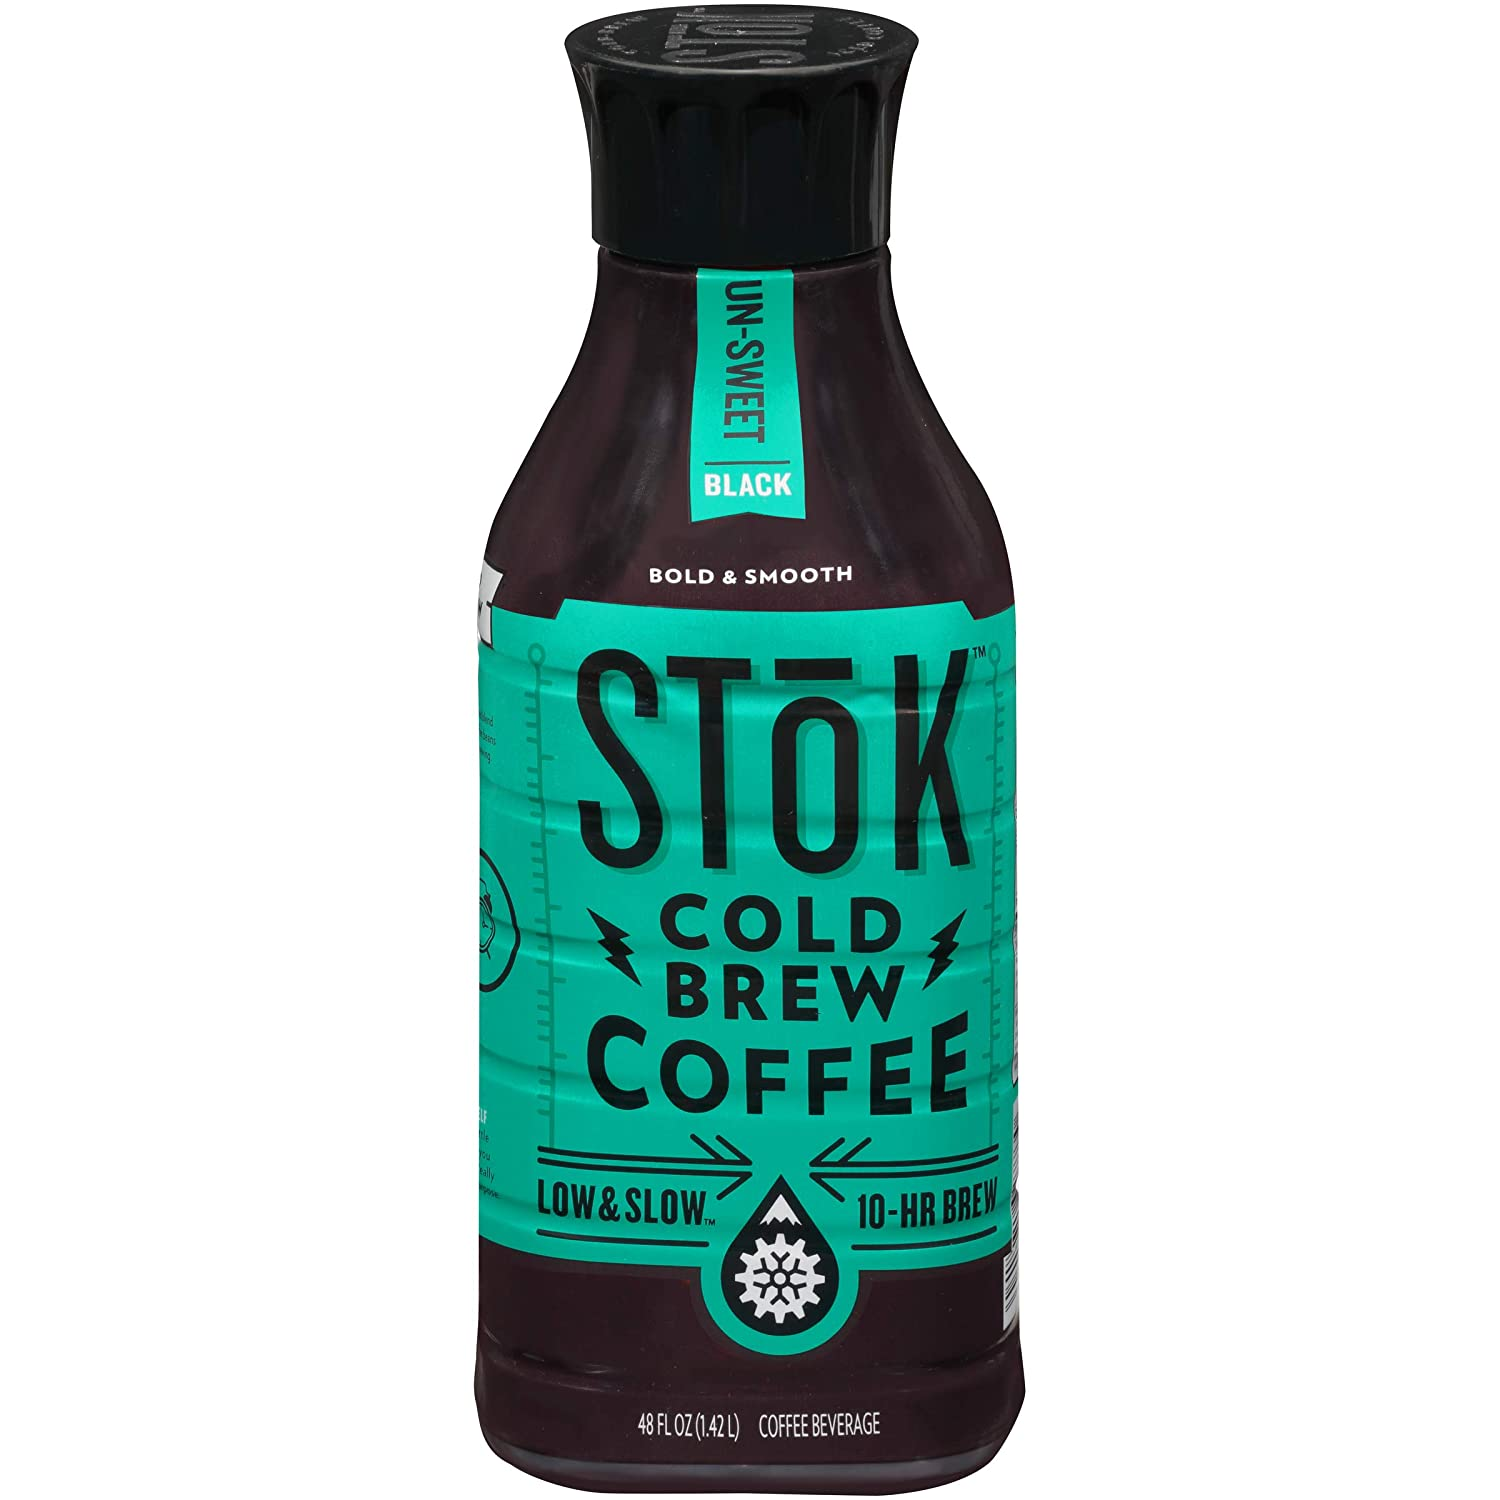 SToK Cold-Brew Iced Coffee, Unsweetened, 48 Ounce, 6 Count